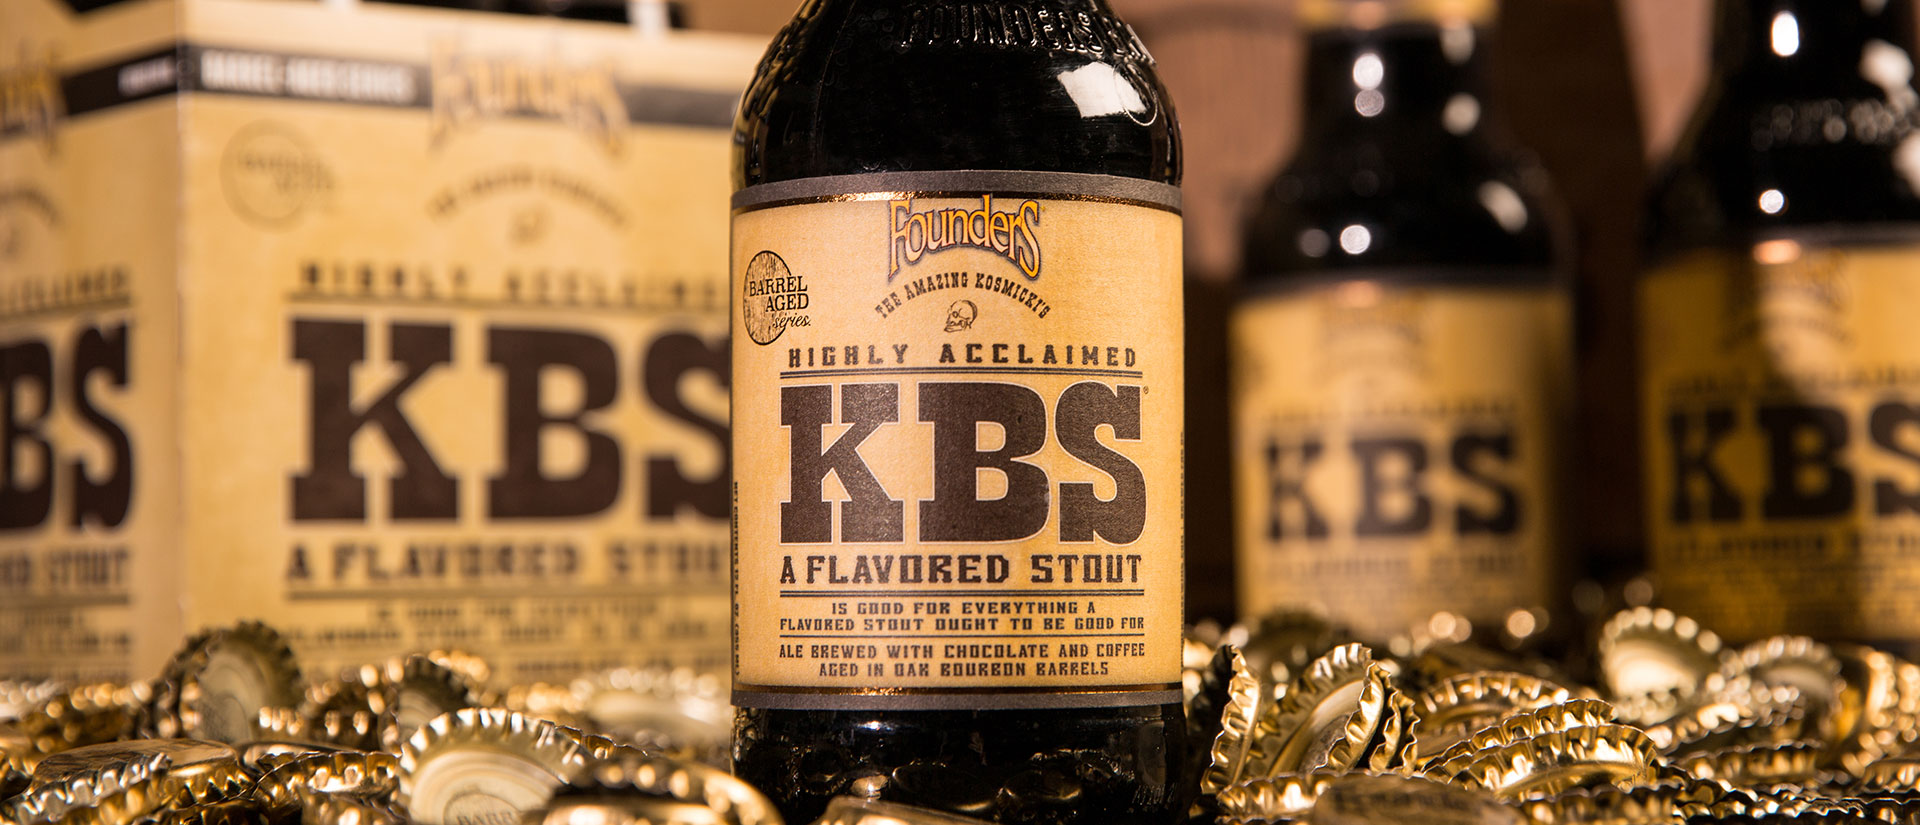 Bottle of Founders KBS